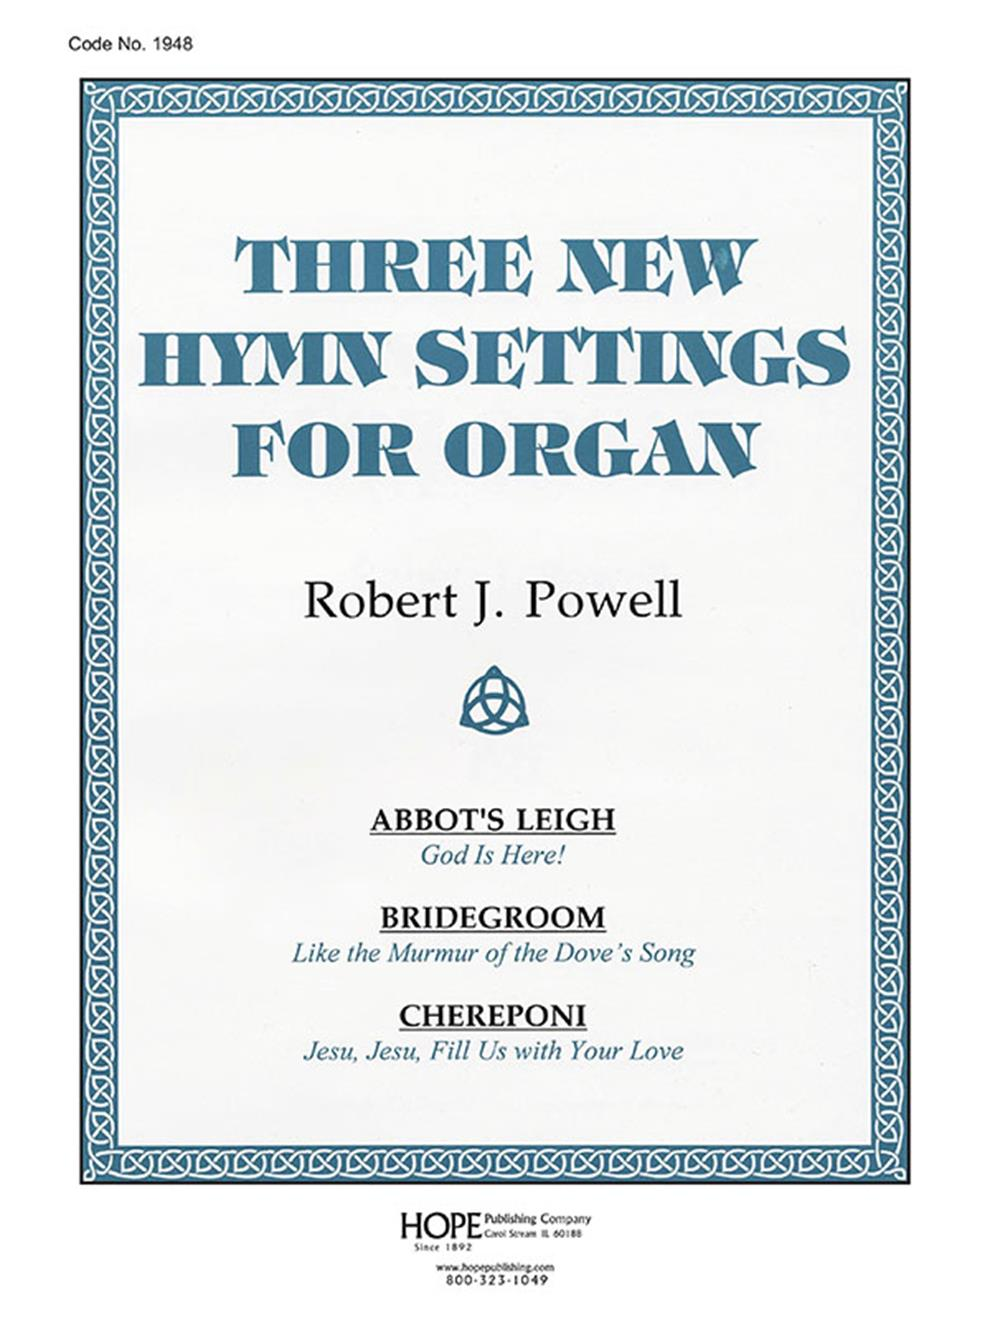 THREE NEW HYMN SETTINGS FOR ORGAN - Cover IMage